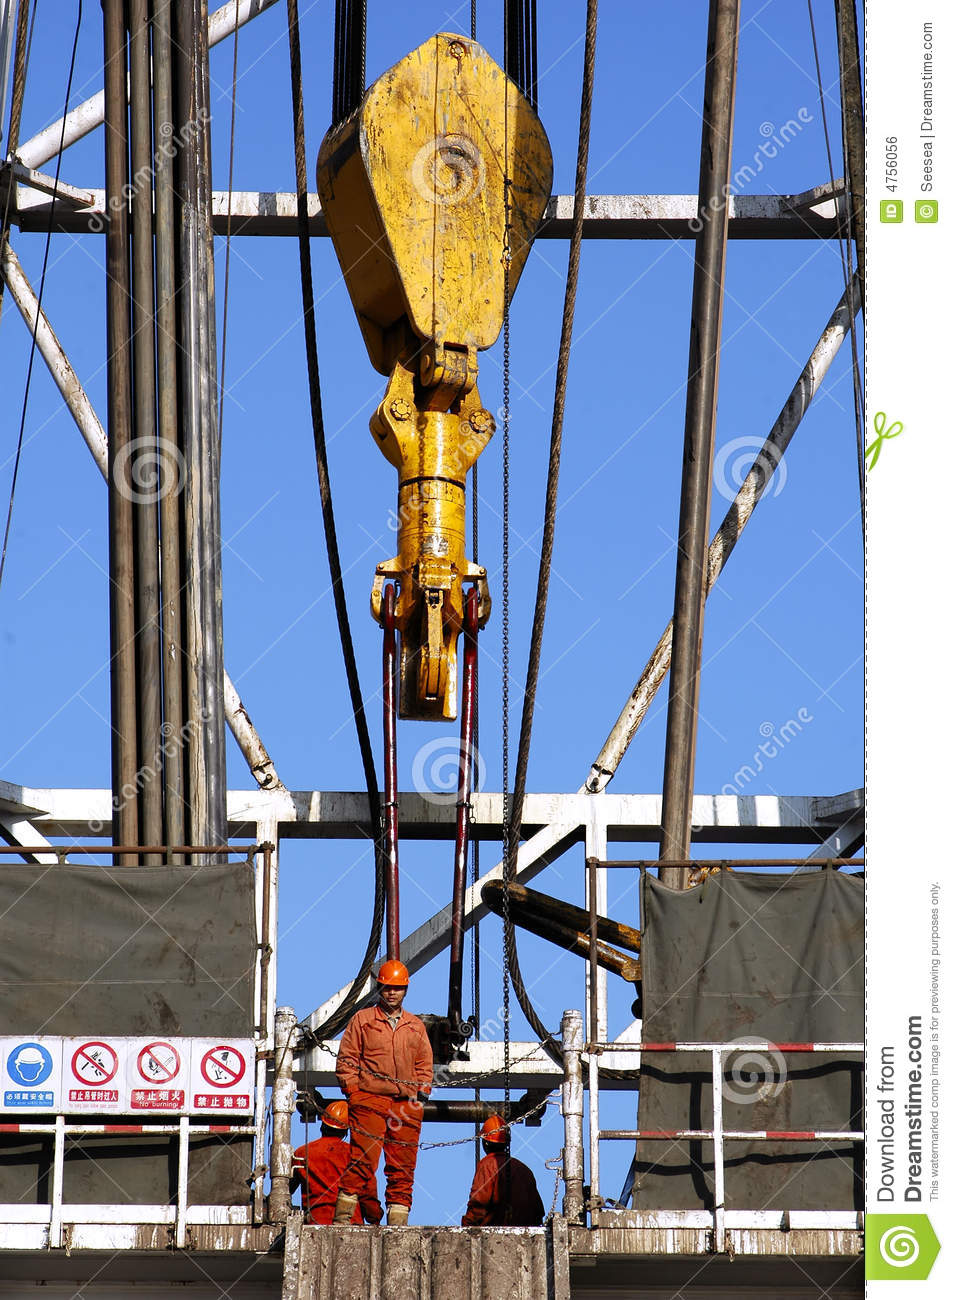 Land Drilling Rig Royalty Free Stock Image   Image  4756056